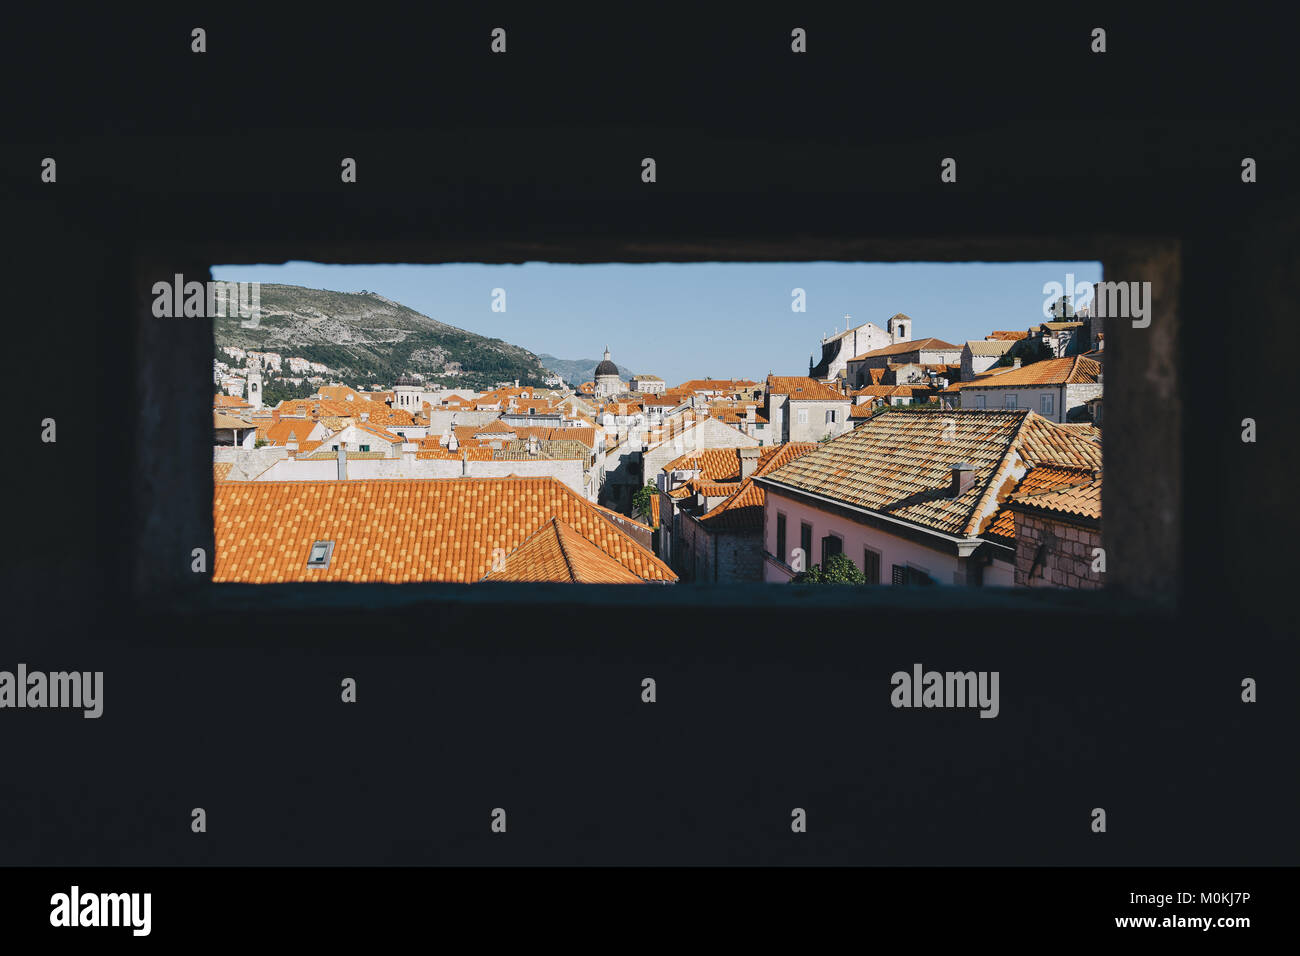 Looking out of a window at red colored terra-cotta rooftops in the historic town of Dubrovnik in beautiful evening - Stock Image